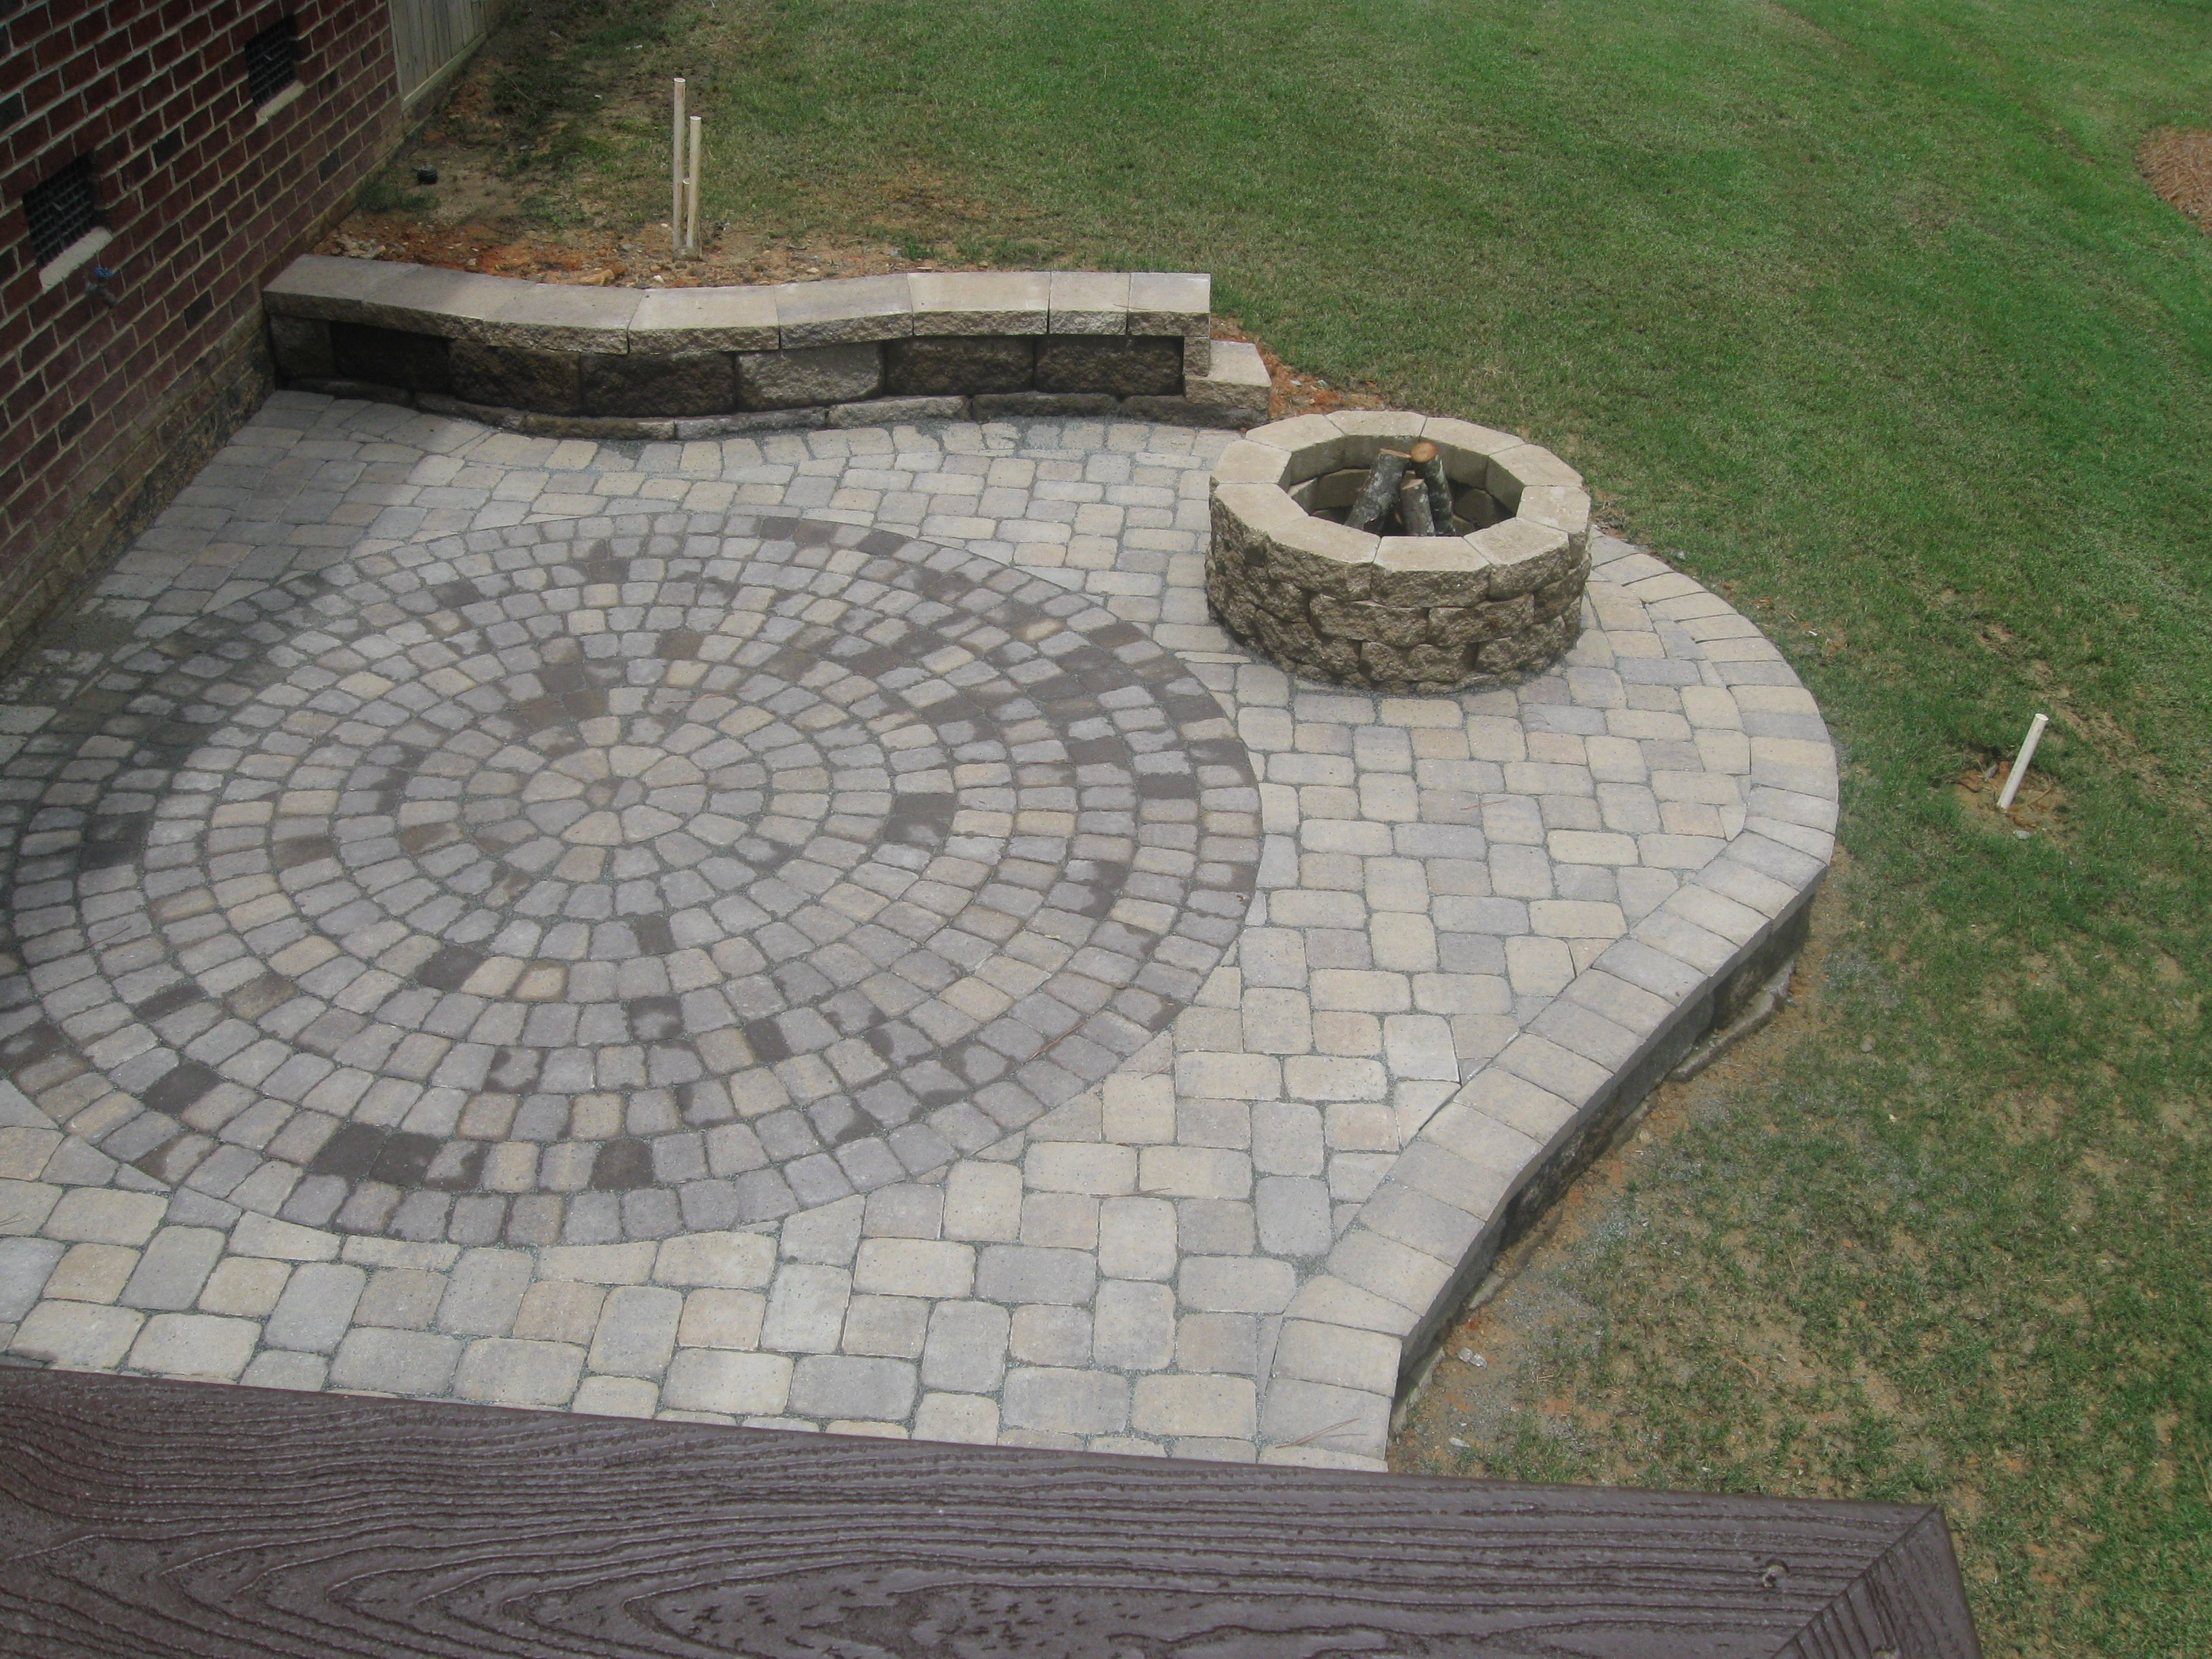 Brick Paver Patio Design Ideas Icmt Set Brick Patio Designs To